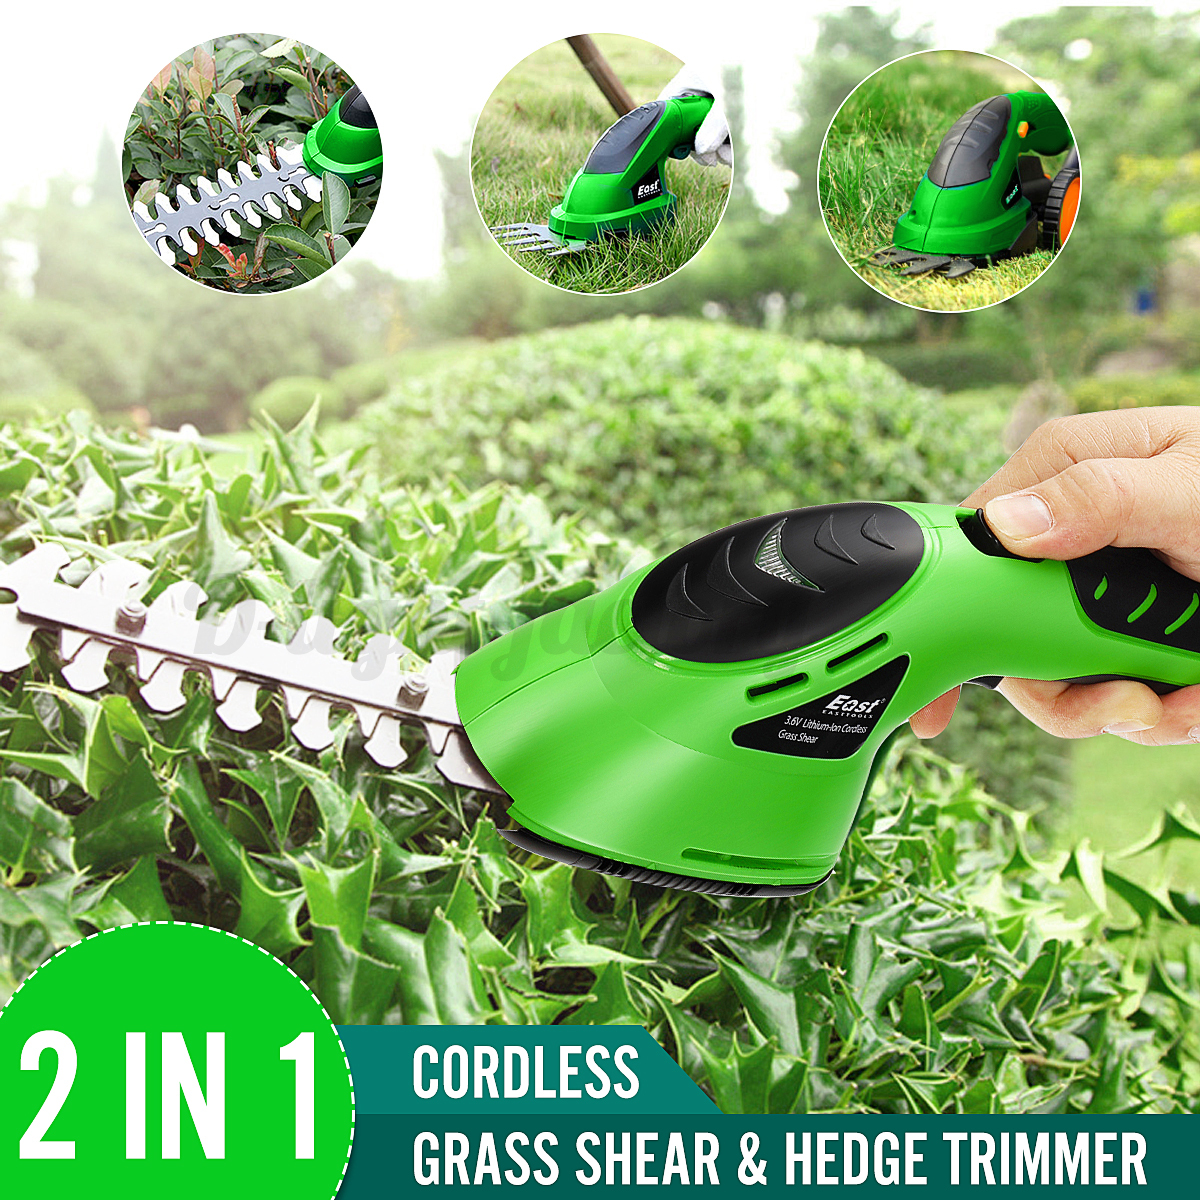 Cordless-Grass-Shear-Lawnmower-Garden-Pruning-Hedge-Trimmer-Rod-Wheel-Holder thumbnail 2